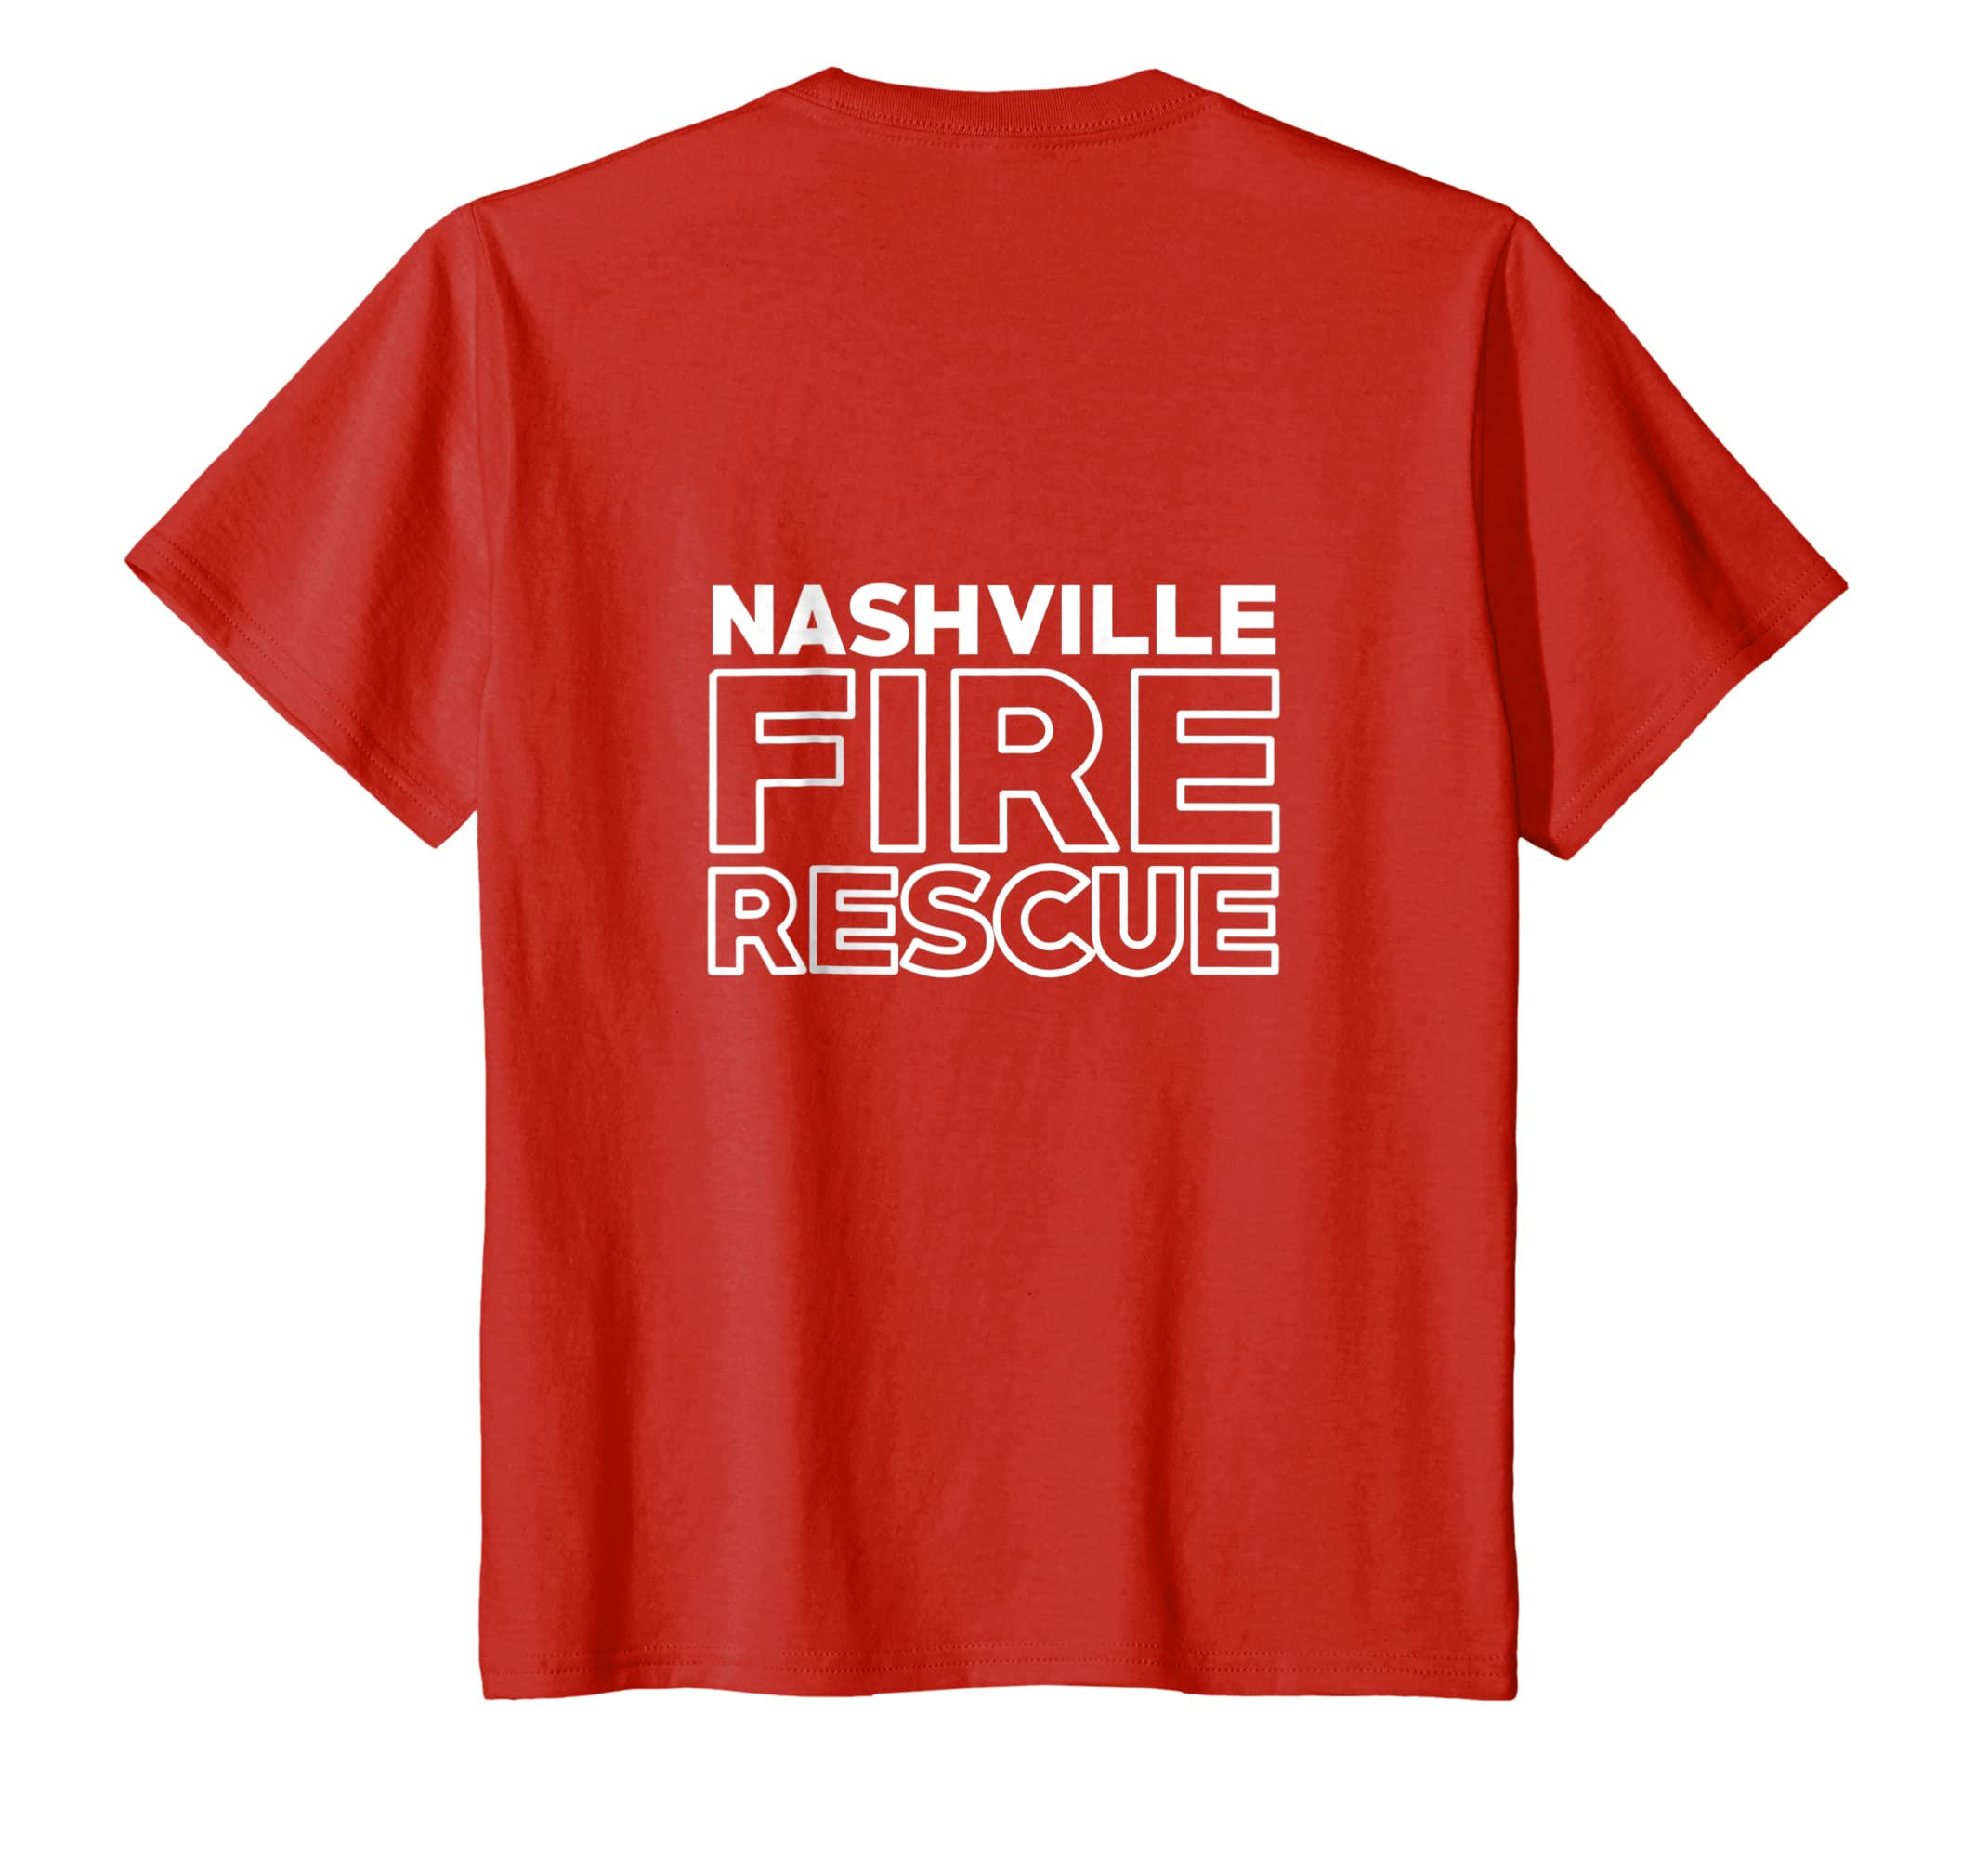 City of Nashville Fire Rescue Tennessee Firefighter T Shirt-Bawle